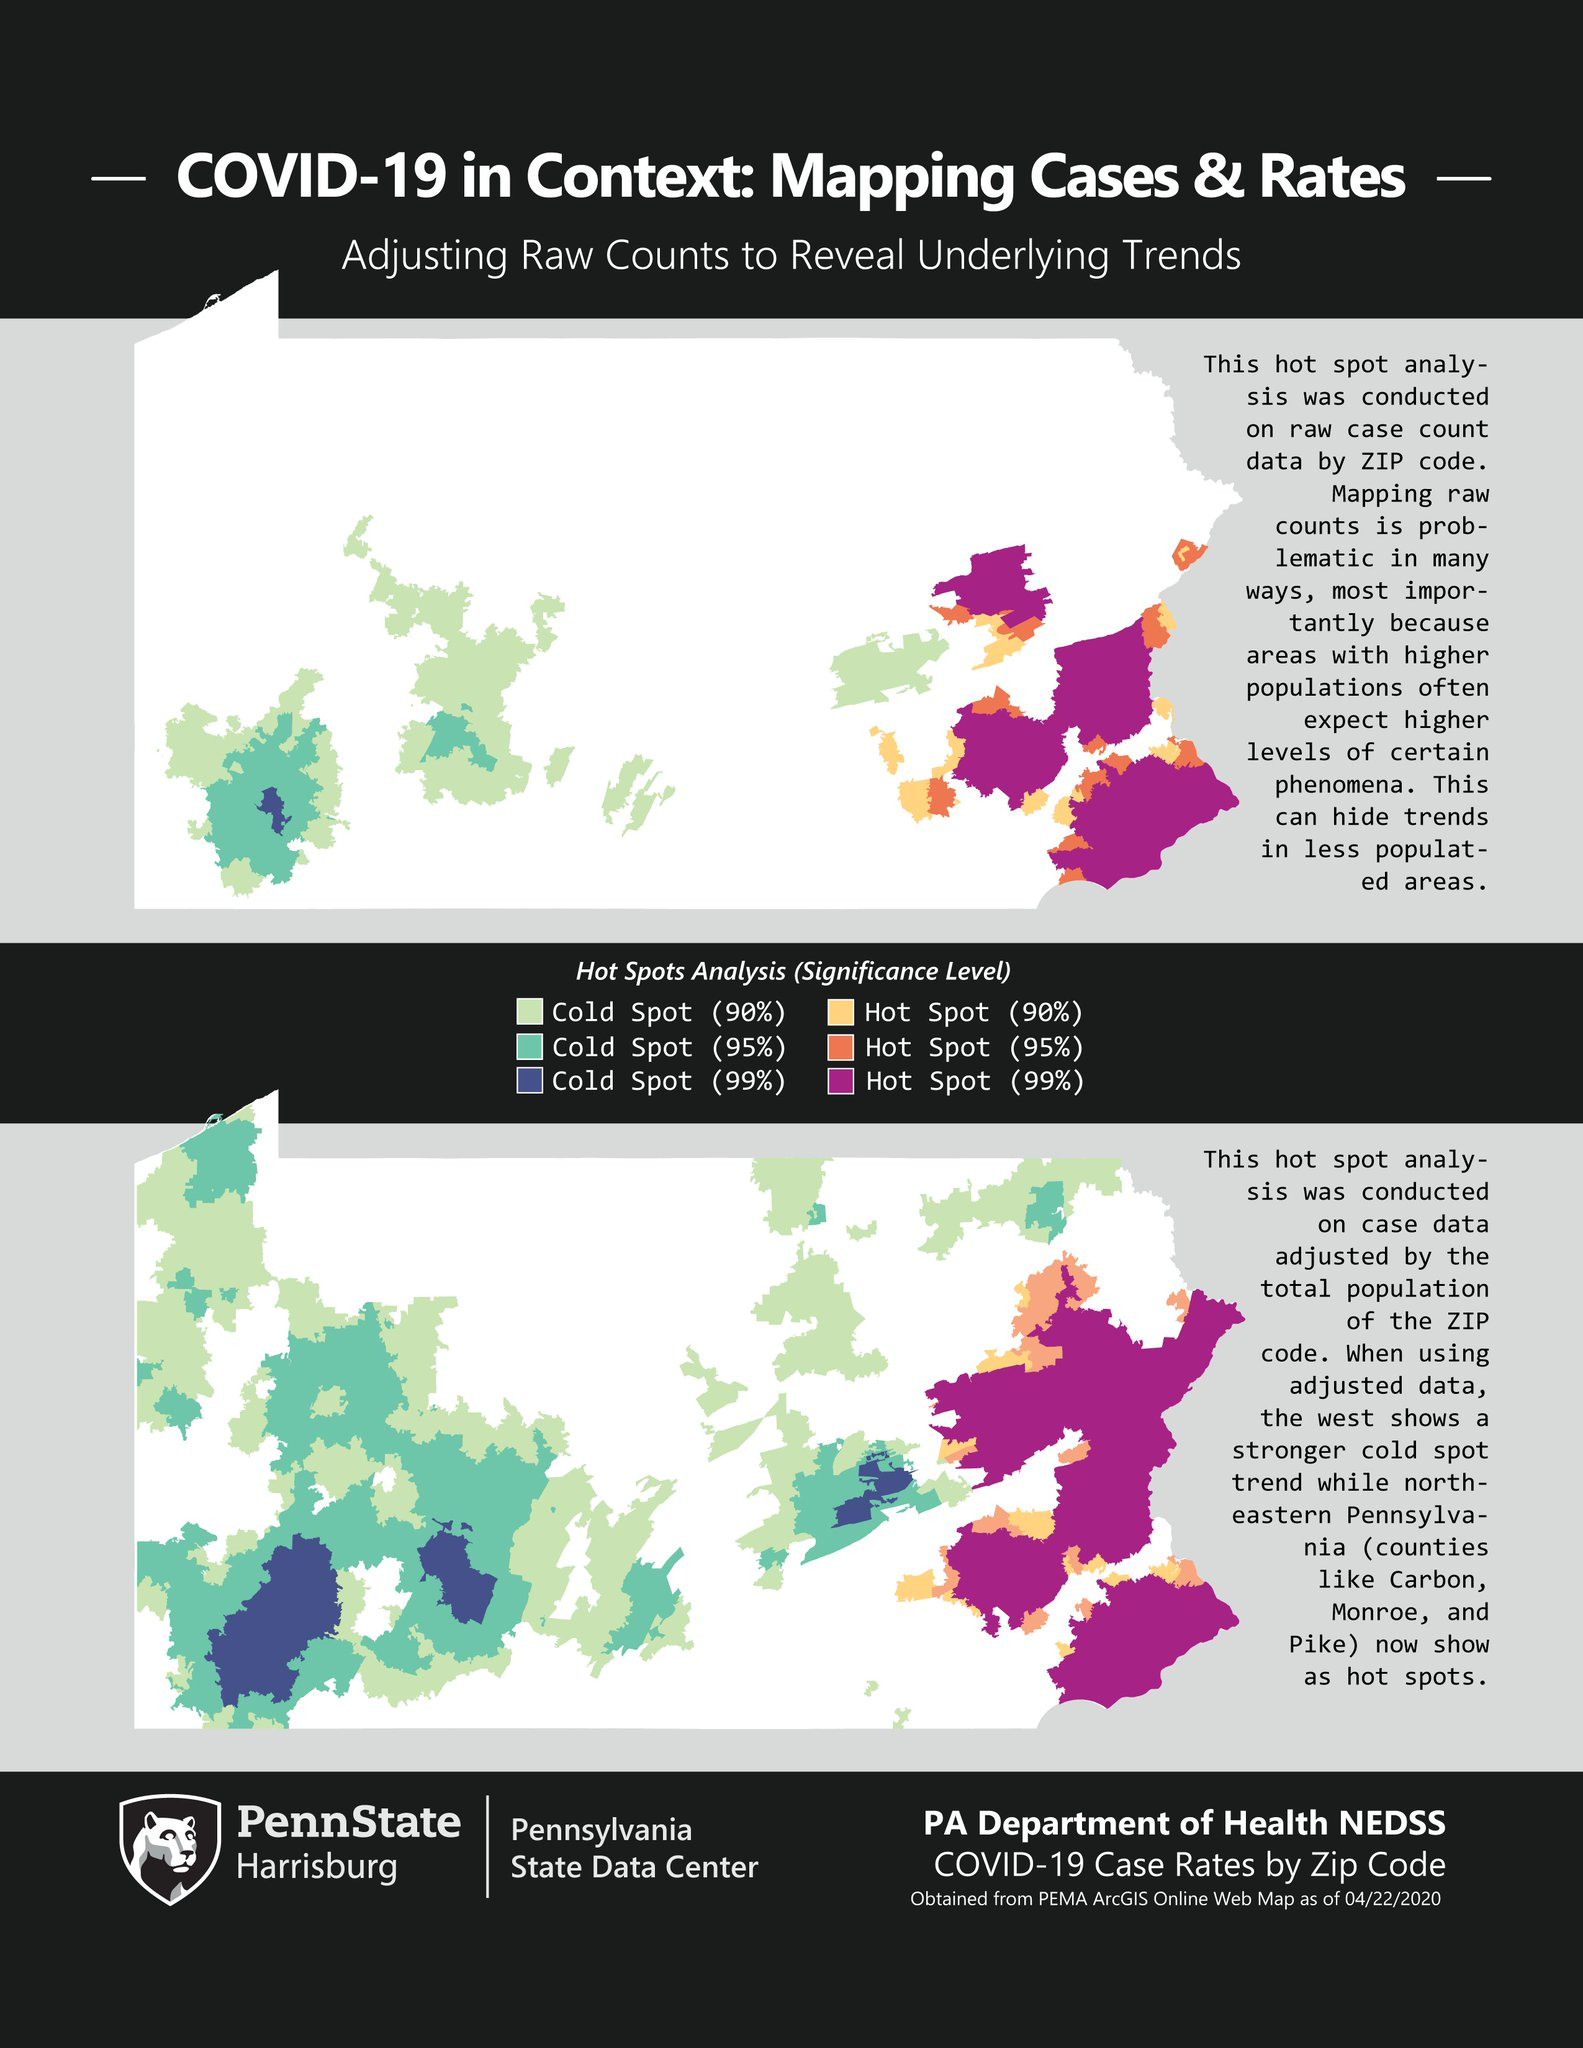 Picture of: Pa State Data Center On Twitter Our Latest Map Shows How Mapping Covid Rates Cases Per Total Population Instead Of Raw Case Counts Can Reveal Additional Hot And Cold Spots At The